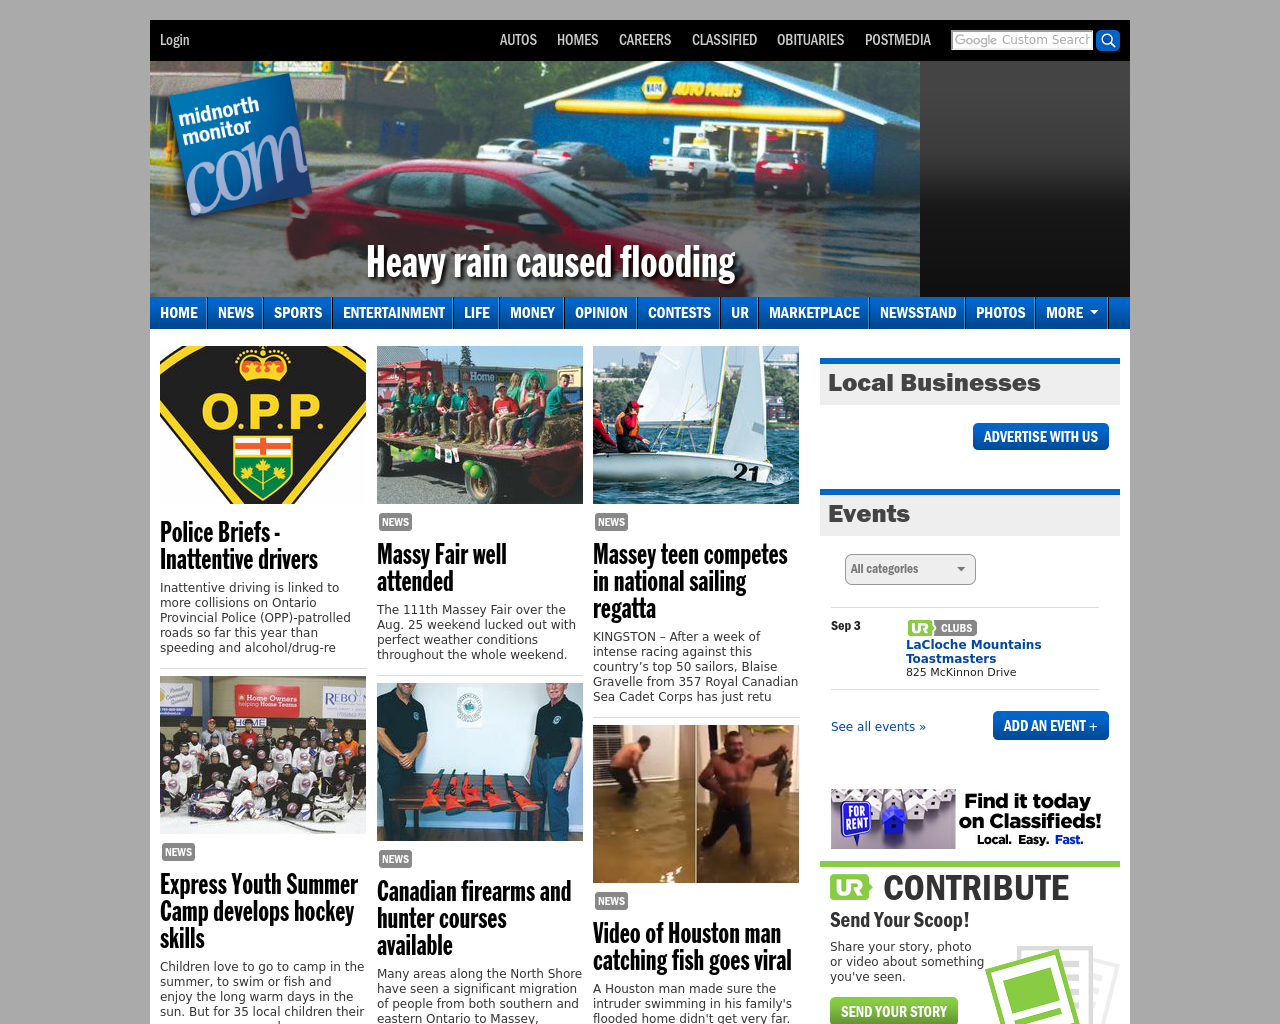 The-Mid-North-Monitor-Advertising-Reviews-Pricing